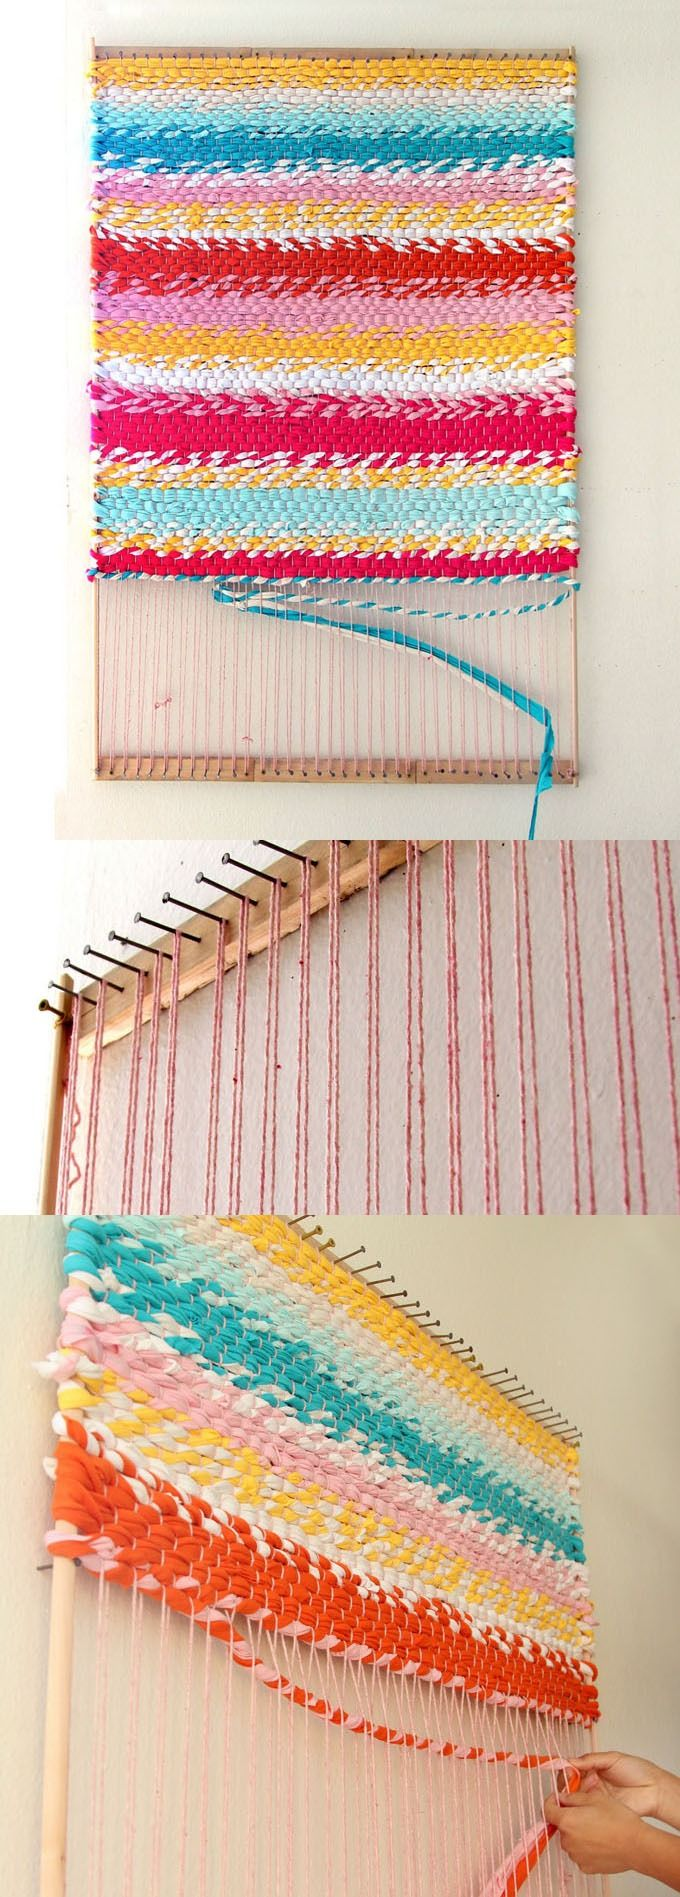 Weave a T-shirt Rug With Easy DIY Loom